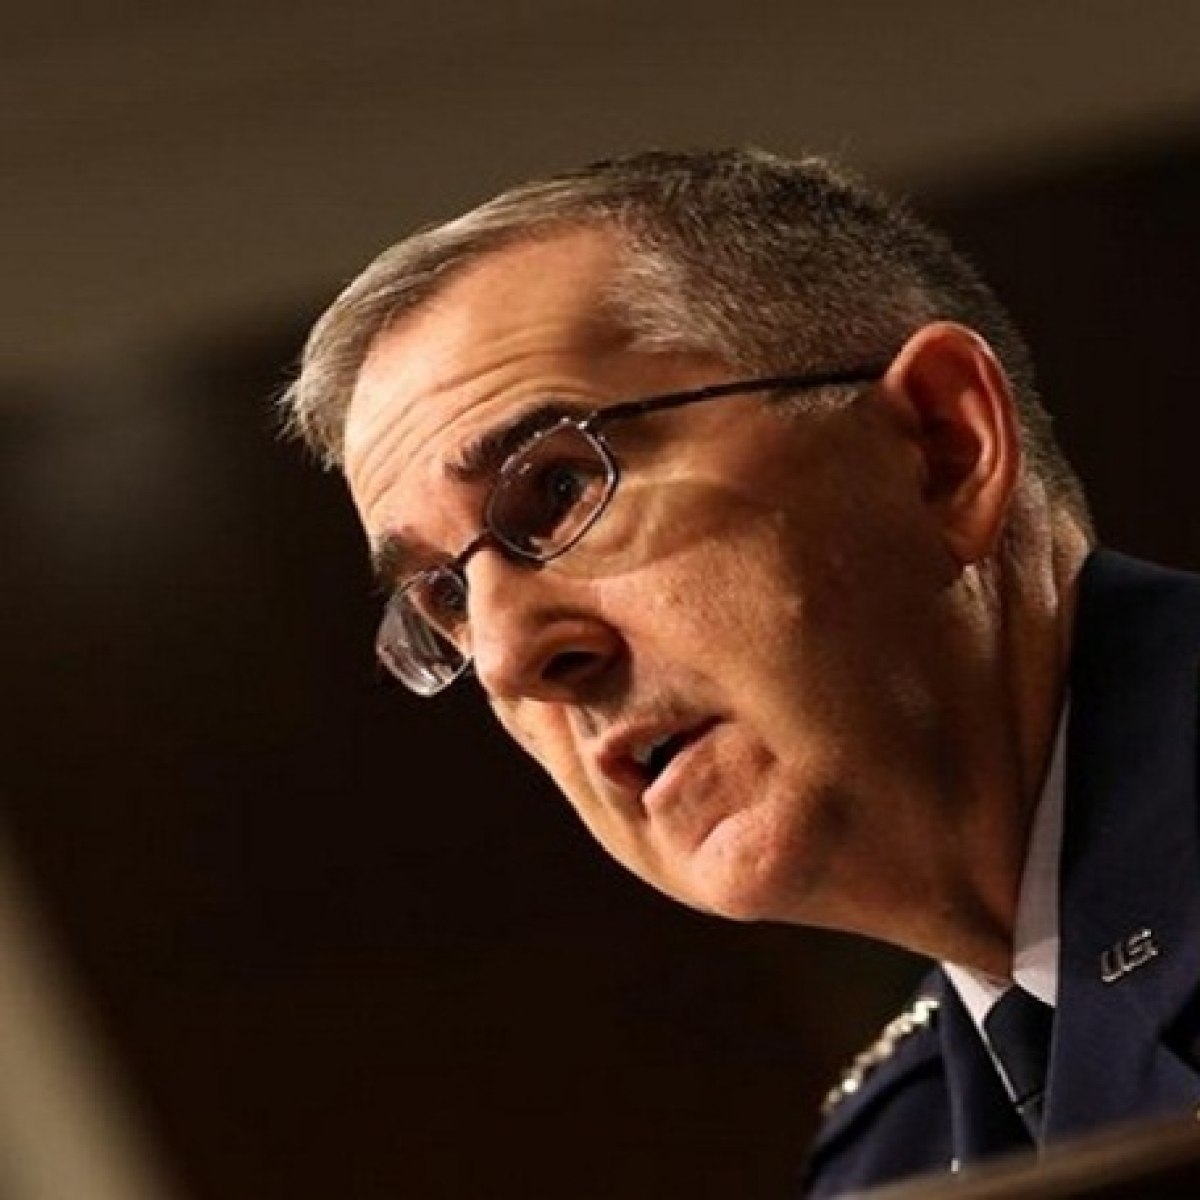 US: Air Force clears senior official of sexual misconduct allegations